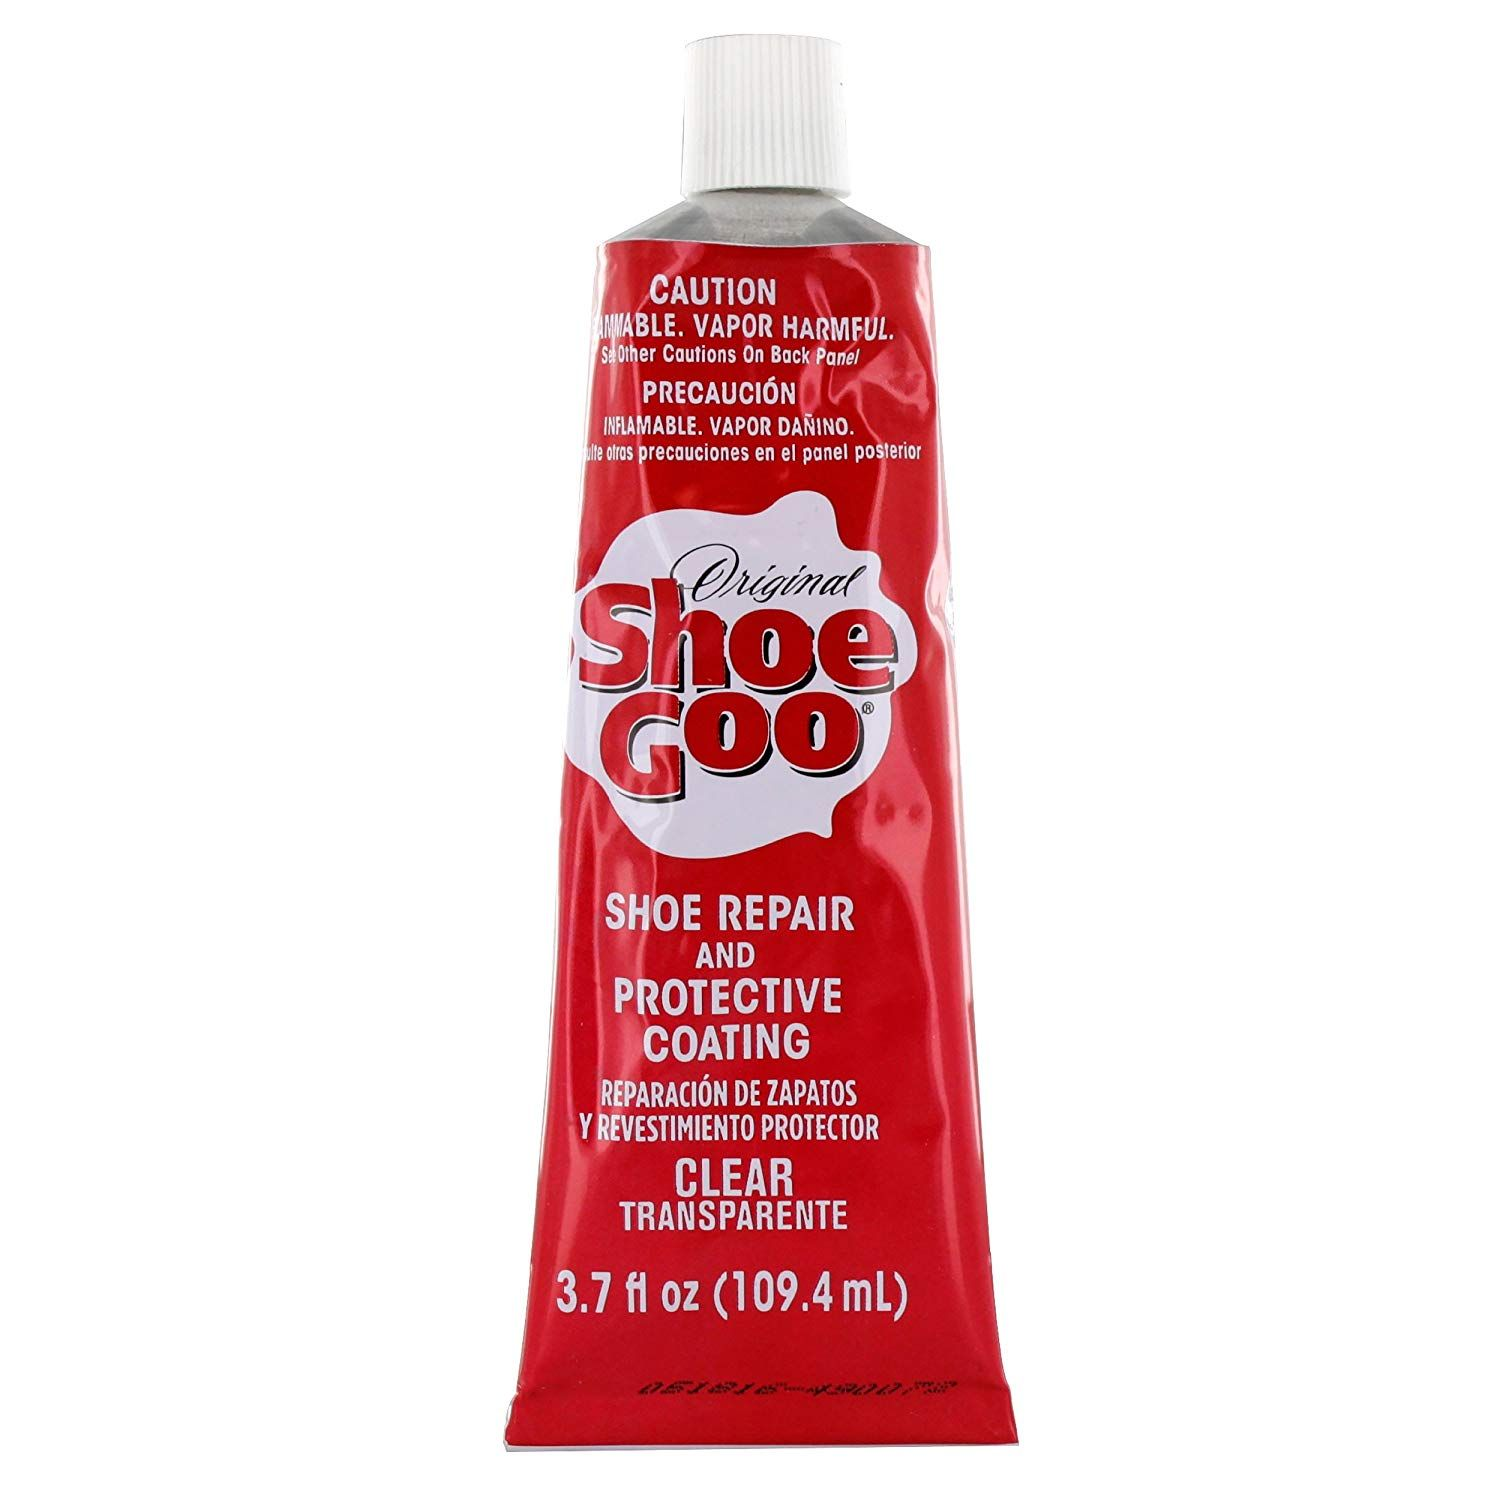 Best Glue For Shoes Reviews In 2020 Top Selections From Expert Shoe Goo Shoe Repair Shoe Sole Repair